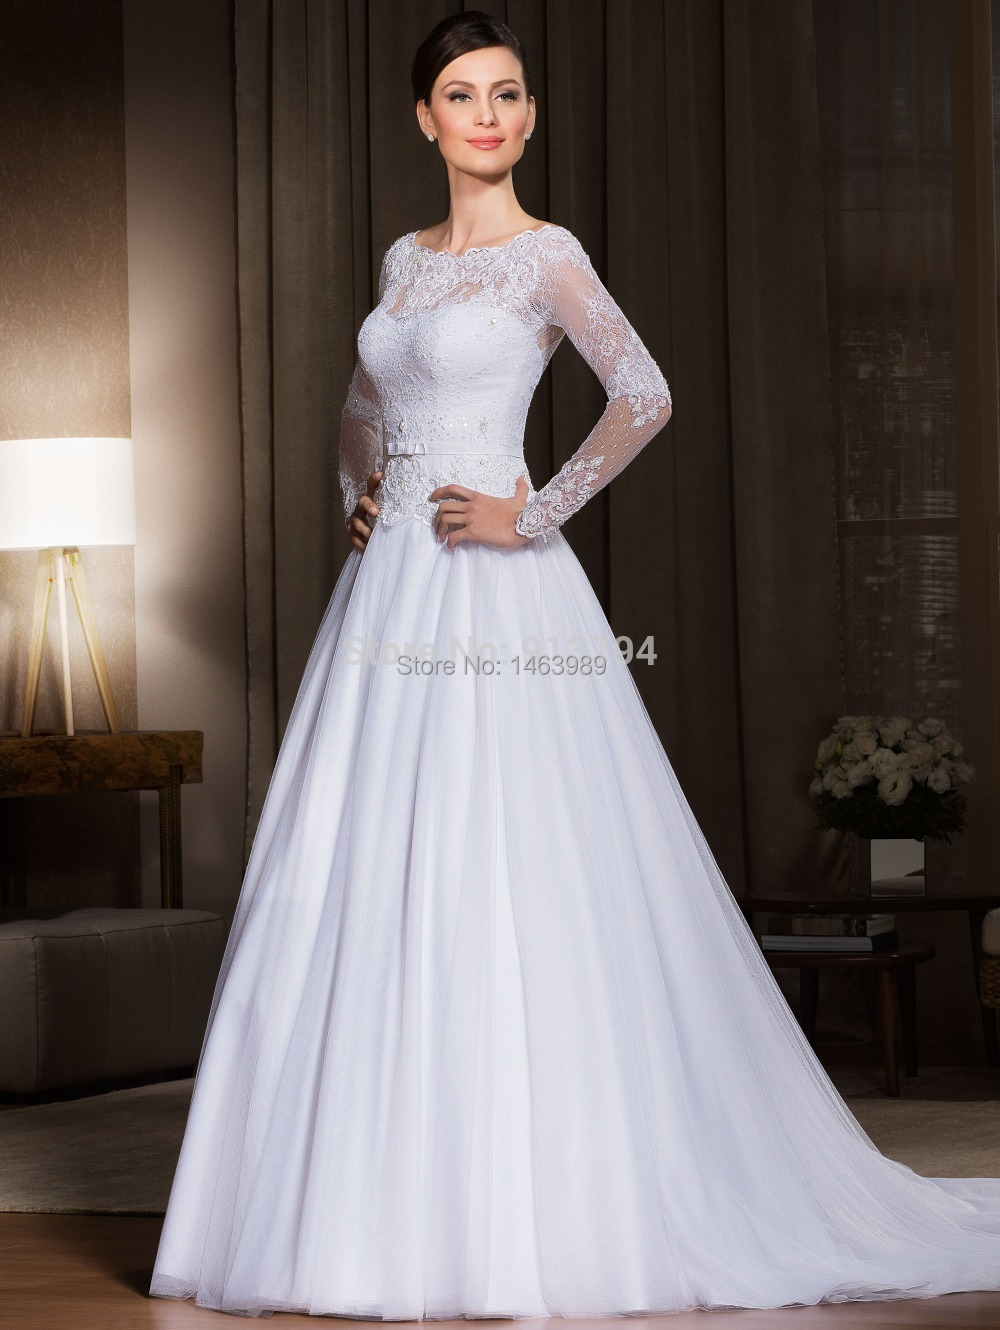 Plus size wedding dresses long sleeves a line tulle for Plus size wedding dresses with color and sleeves